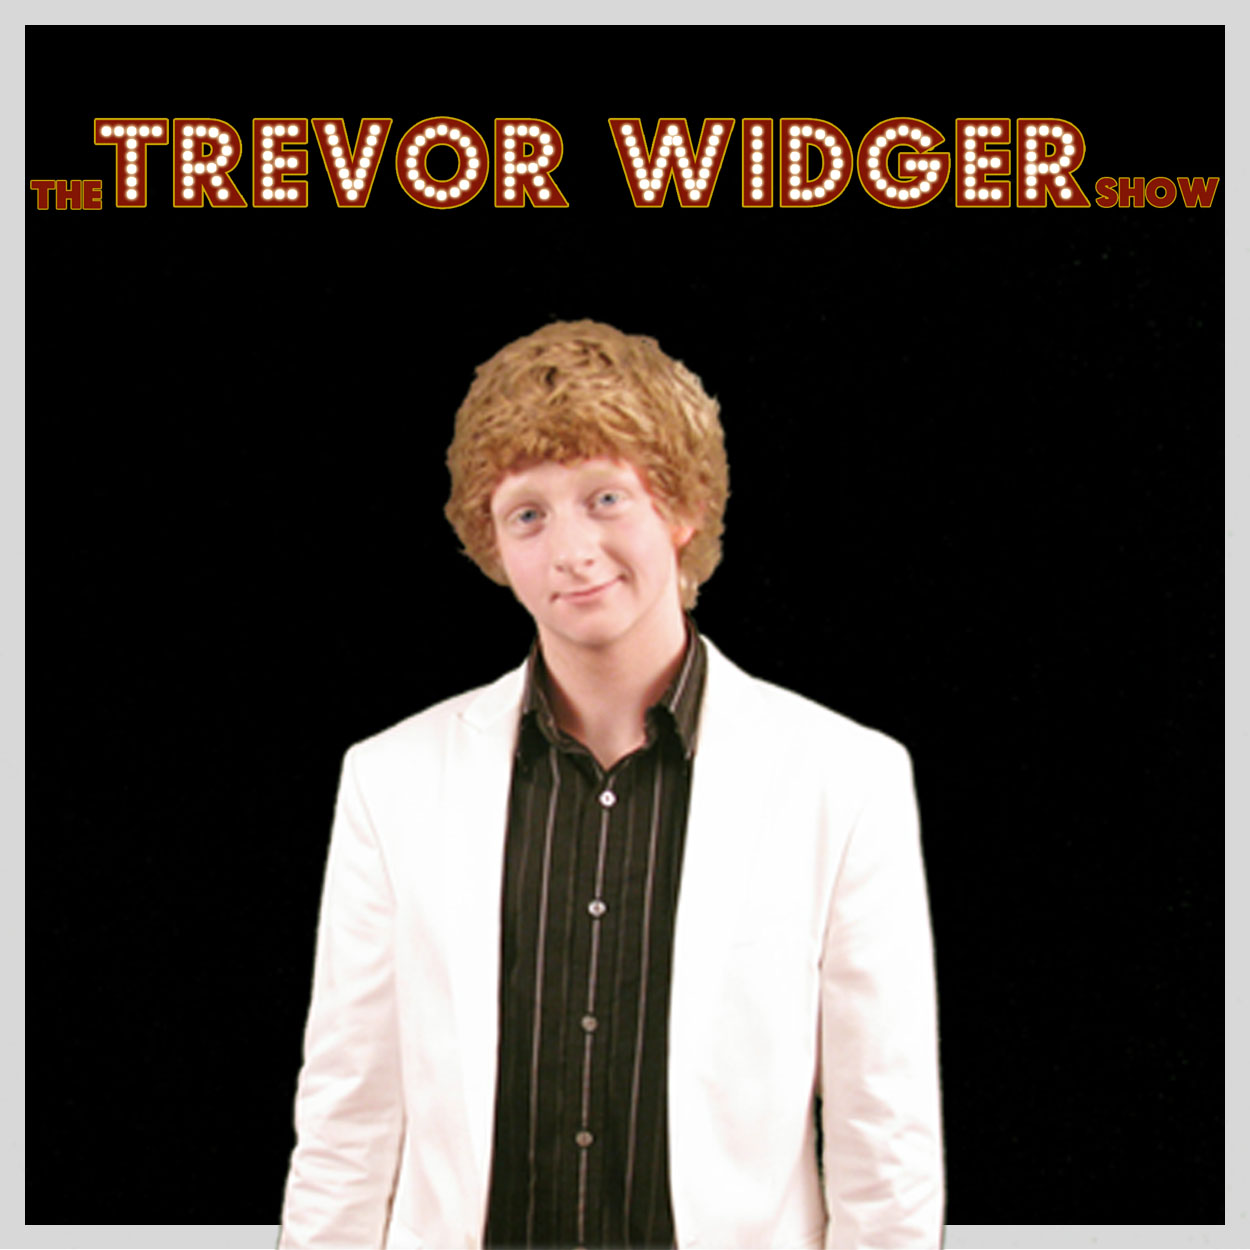 The Trevor Widger Show